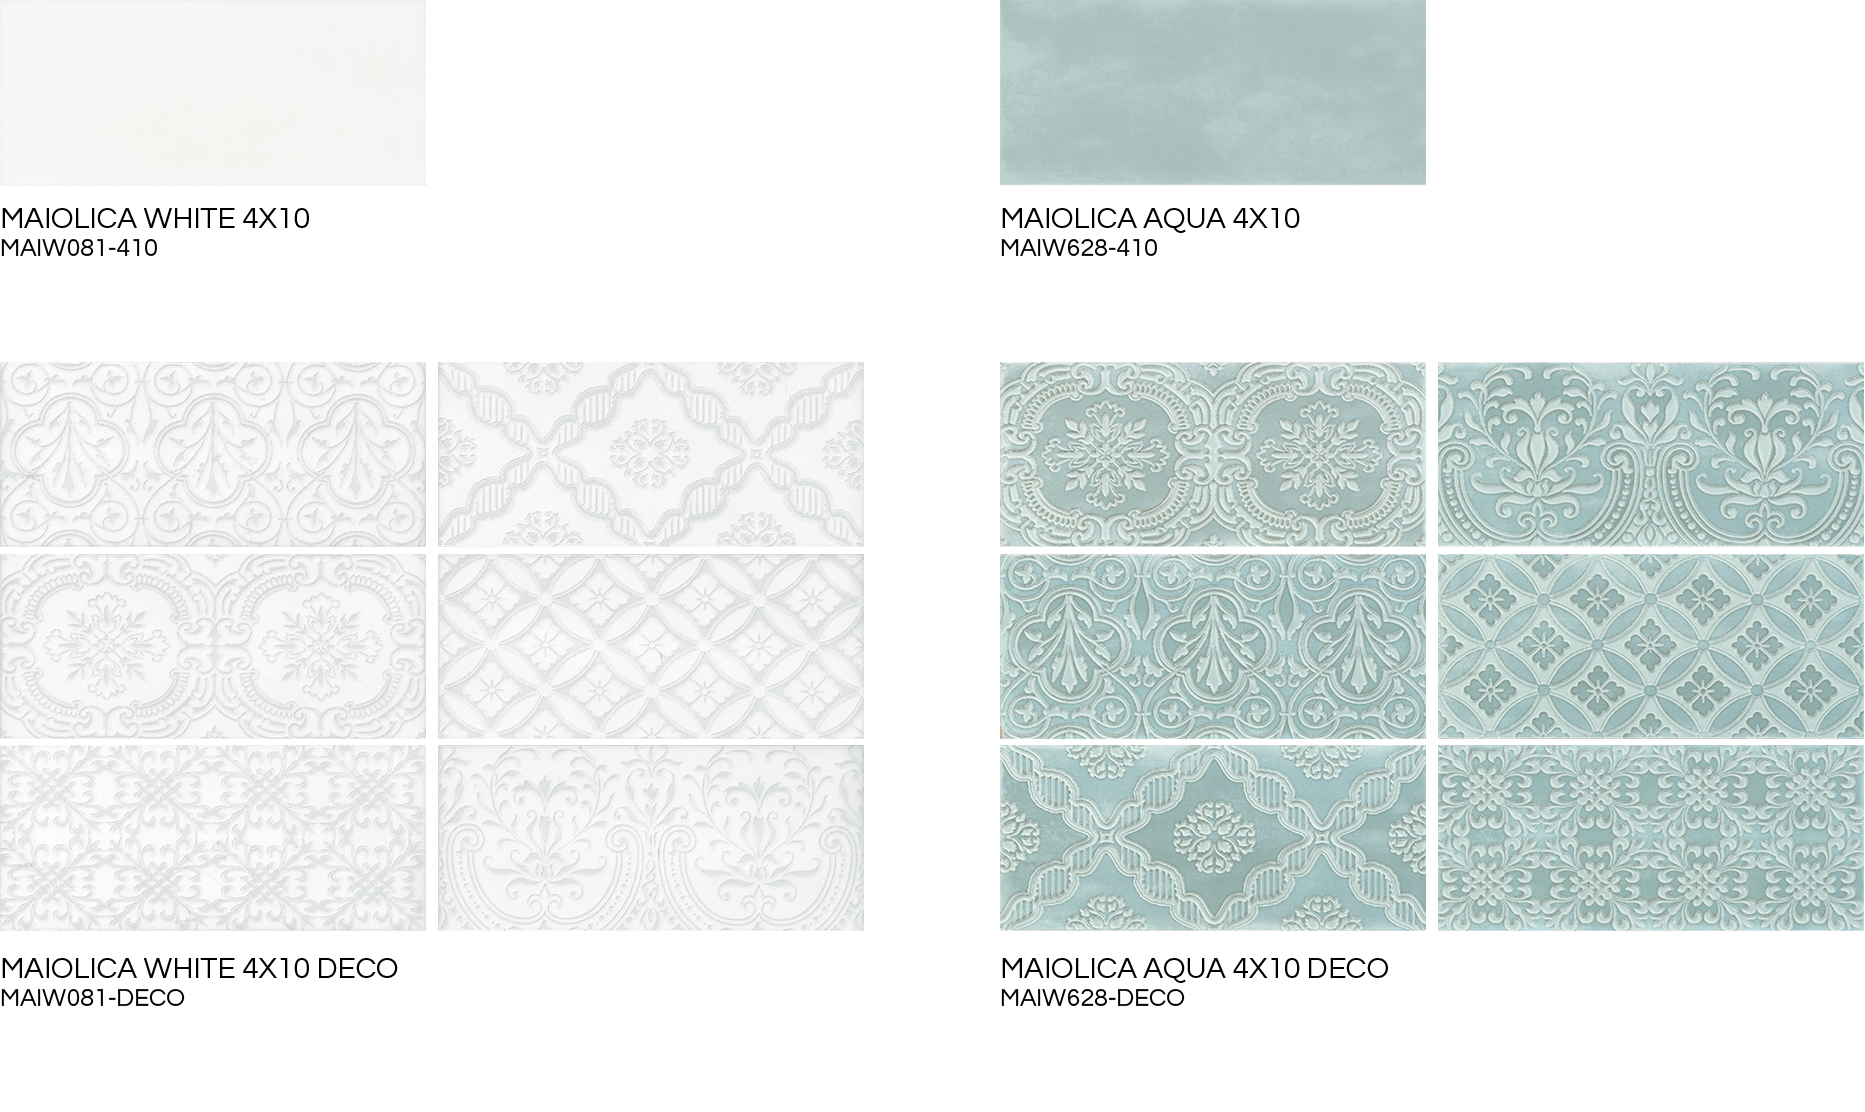 Tile drawing subway herringbone. Maiolica white aqua ceramic